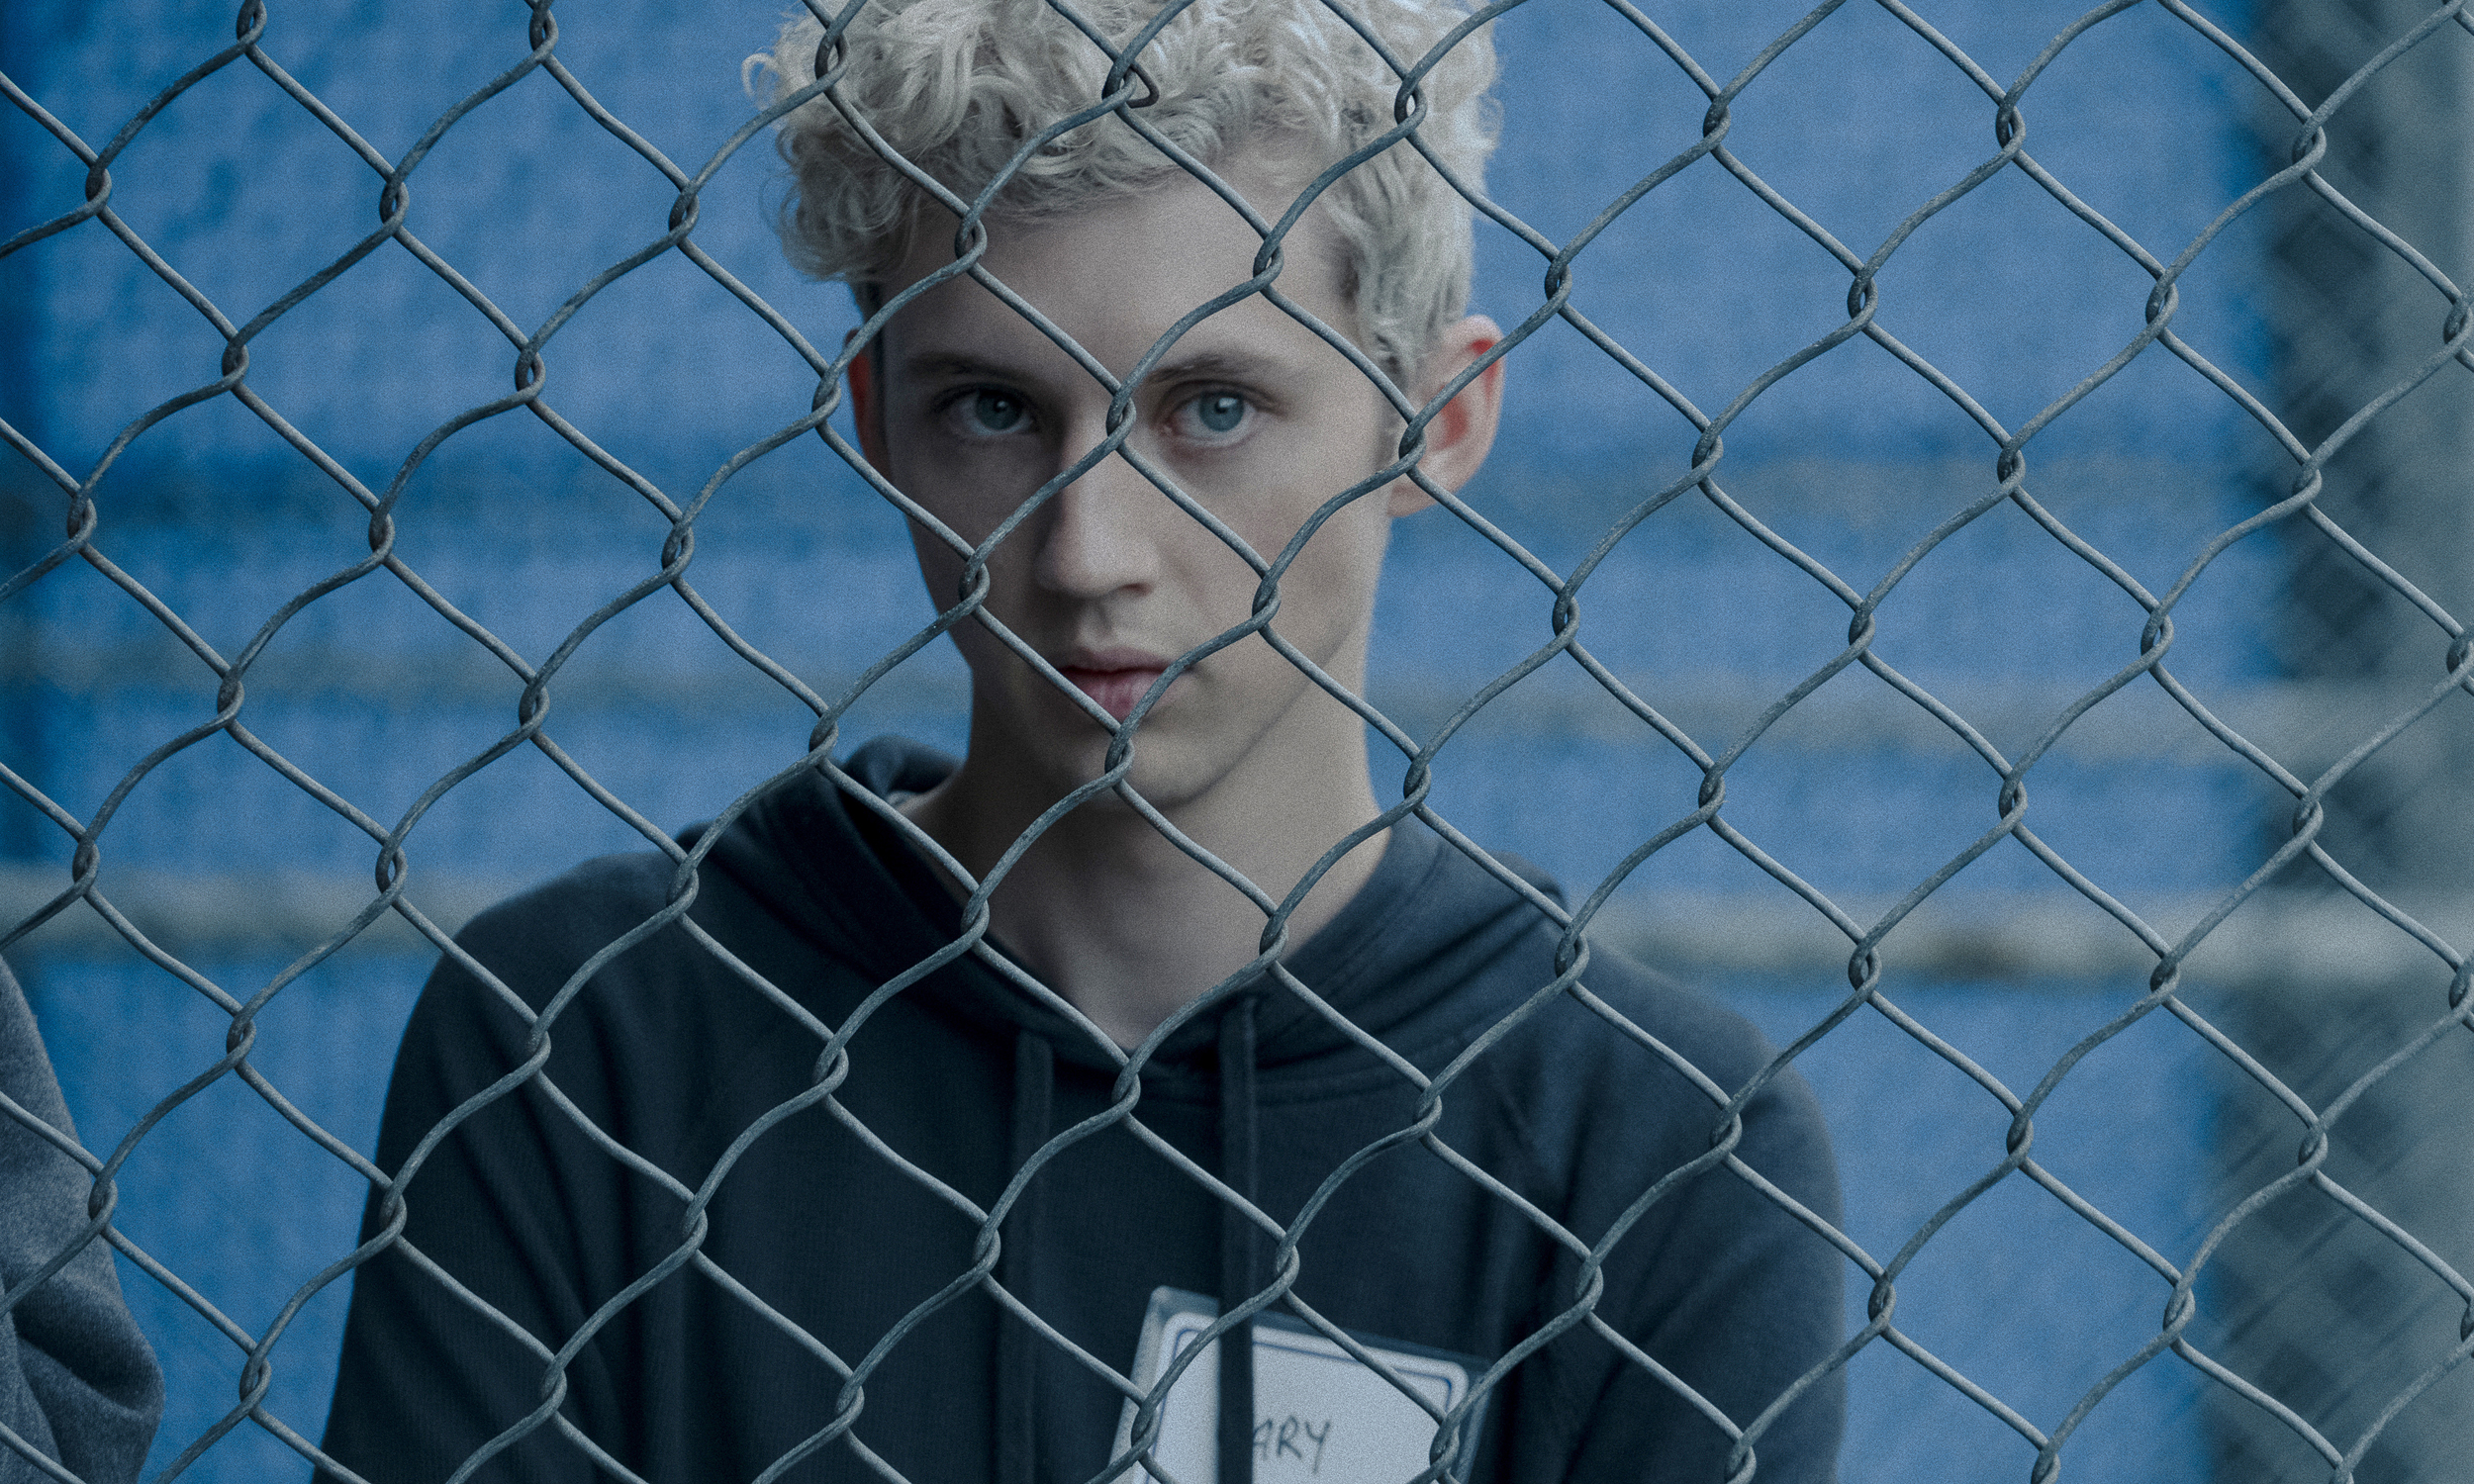 Troye Sivan returns to acting in 'conversion therapy' drama 'Boy Erased'